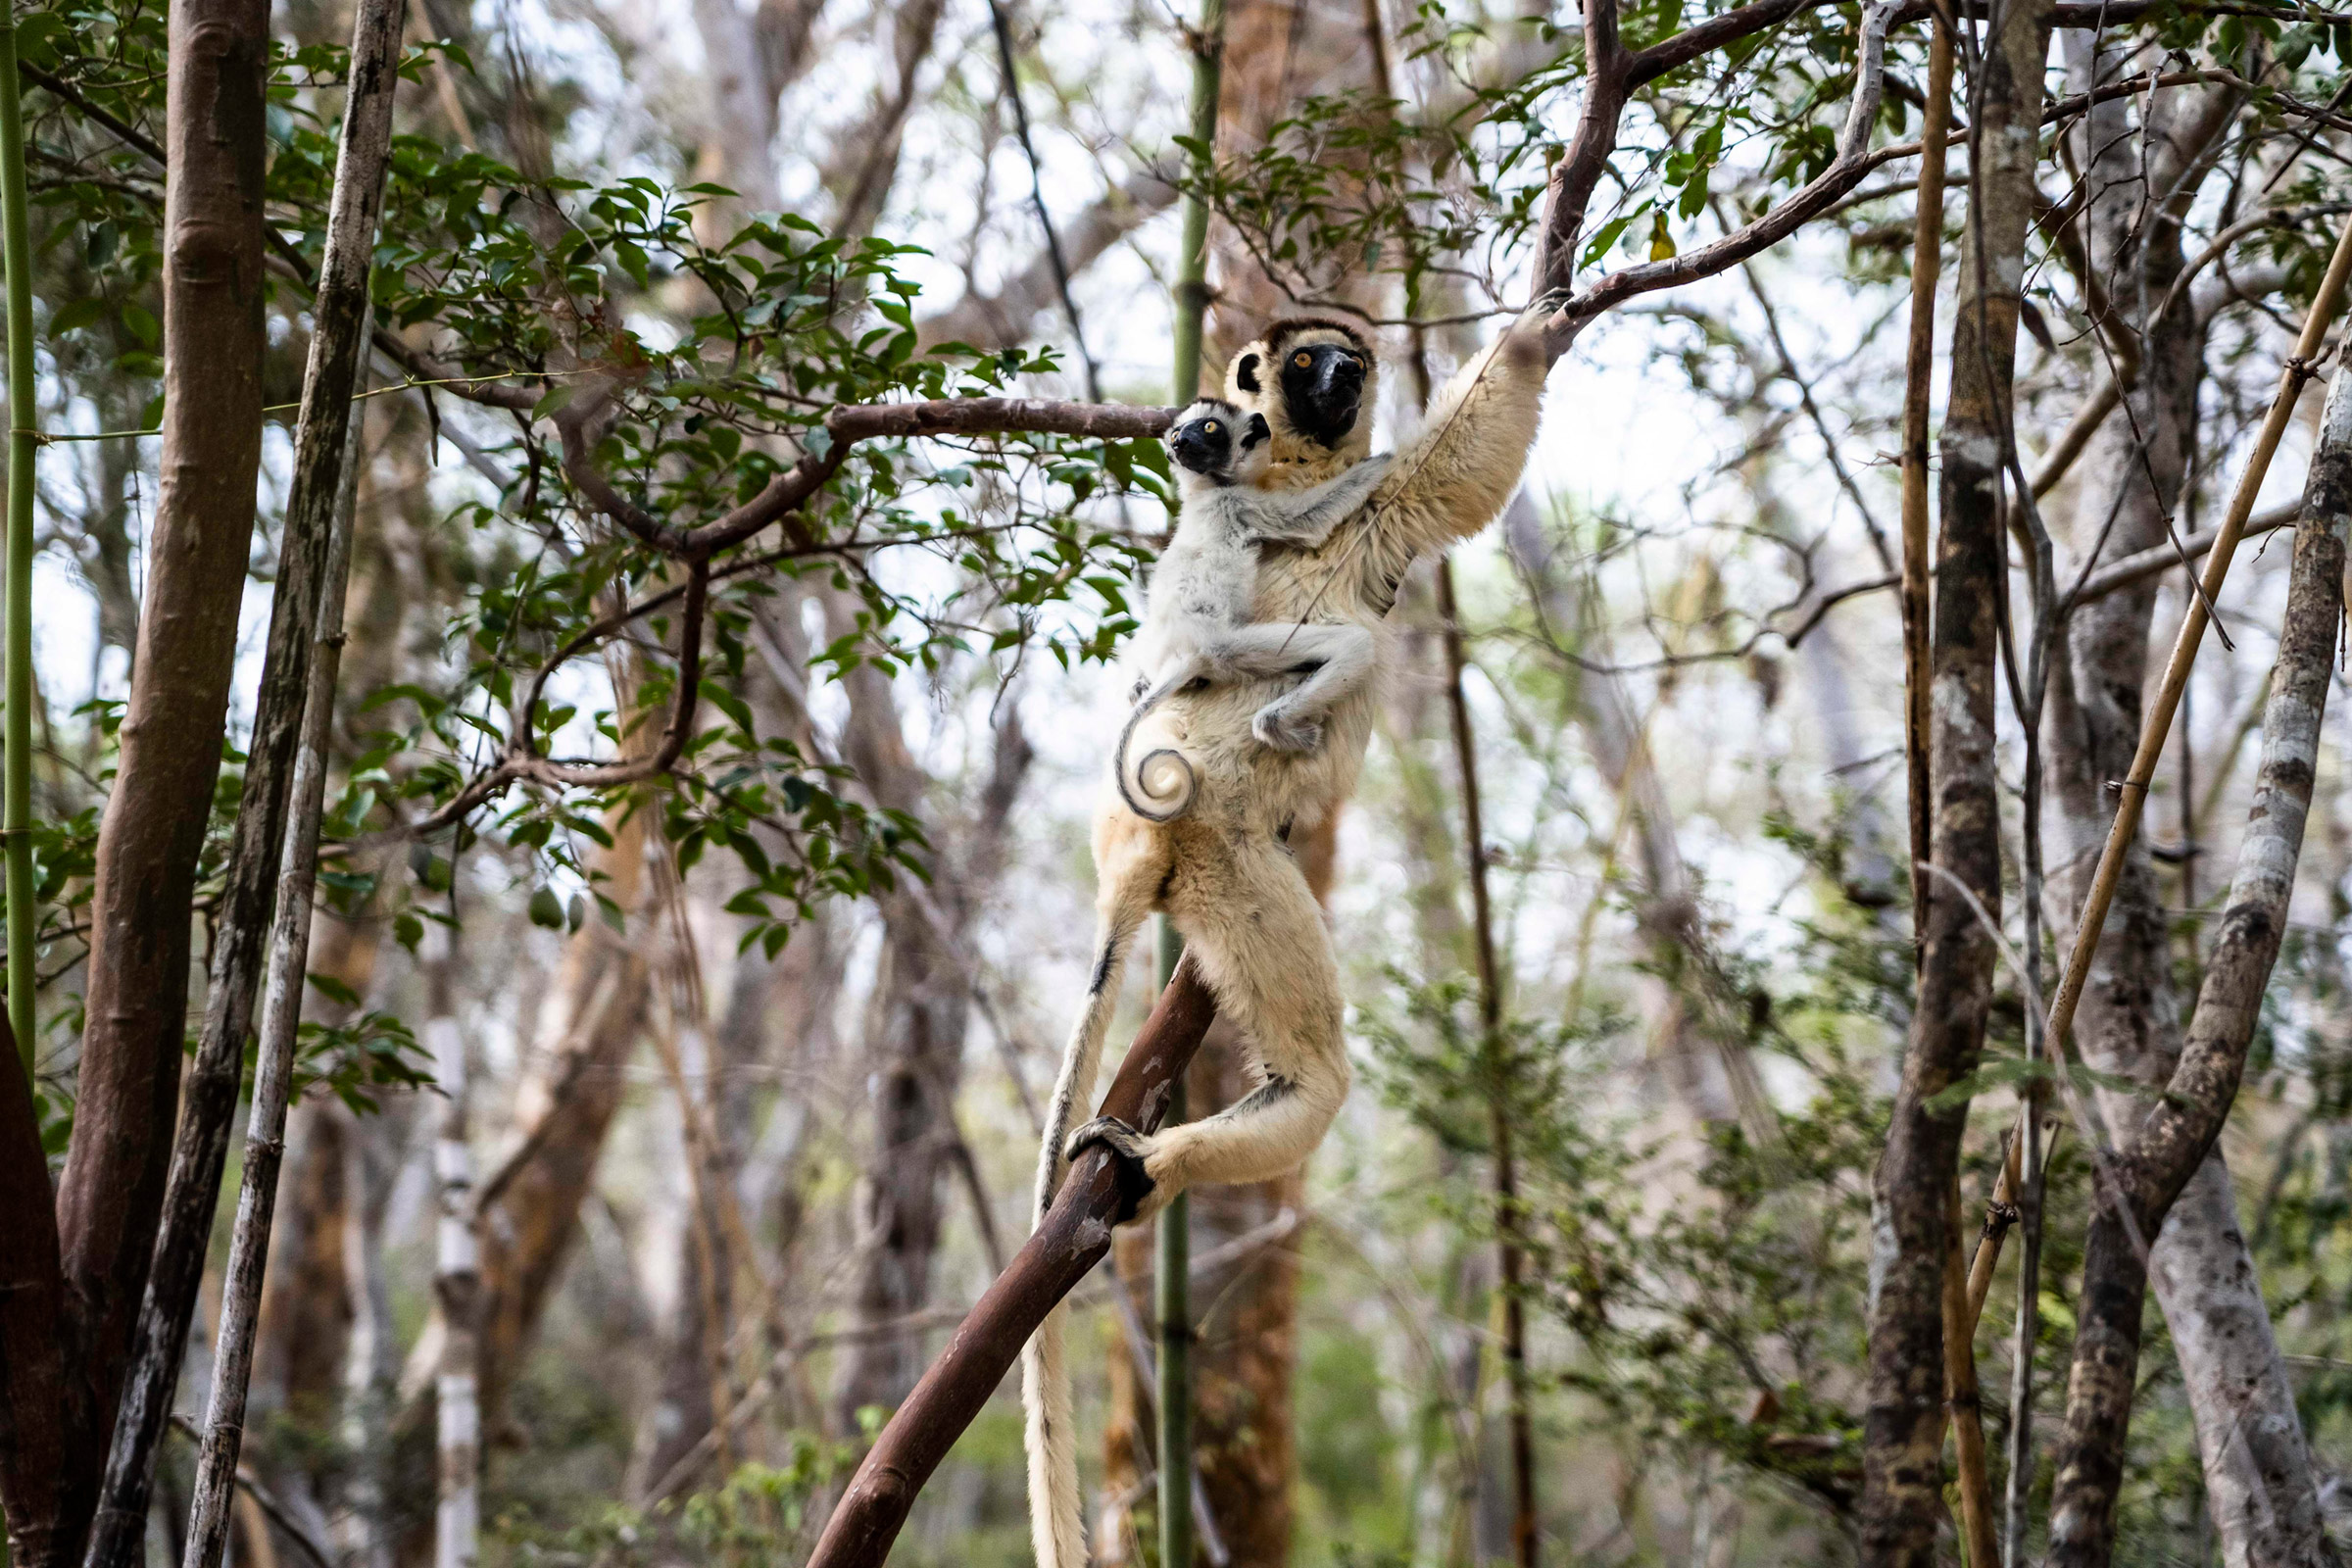 Lemurs in Kirindy Forest, a private reserve along Madagascar's west coast that has suffered profound deforestation in recent years, on Nov. 23, 2019.